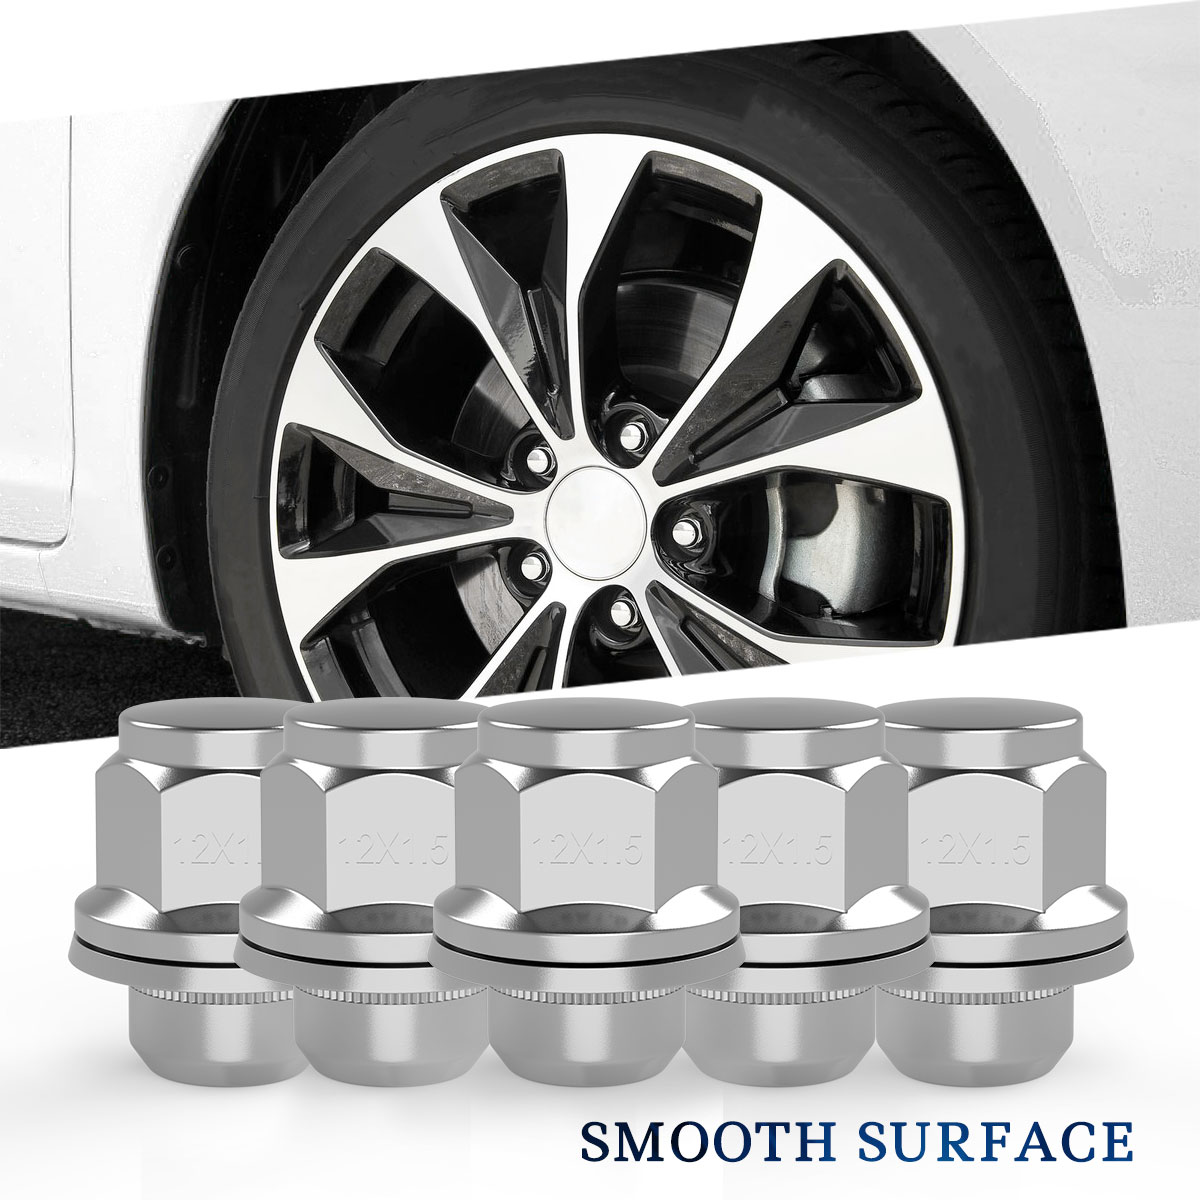 12x1.5 Nuts For Toyota Prius C 11-16 24 Original Style Wheel Nuts ...